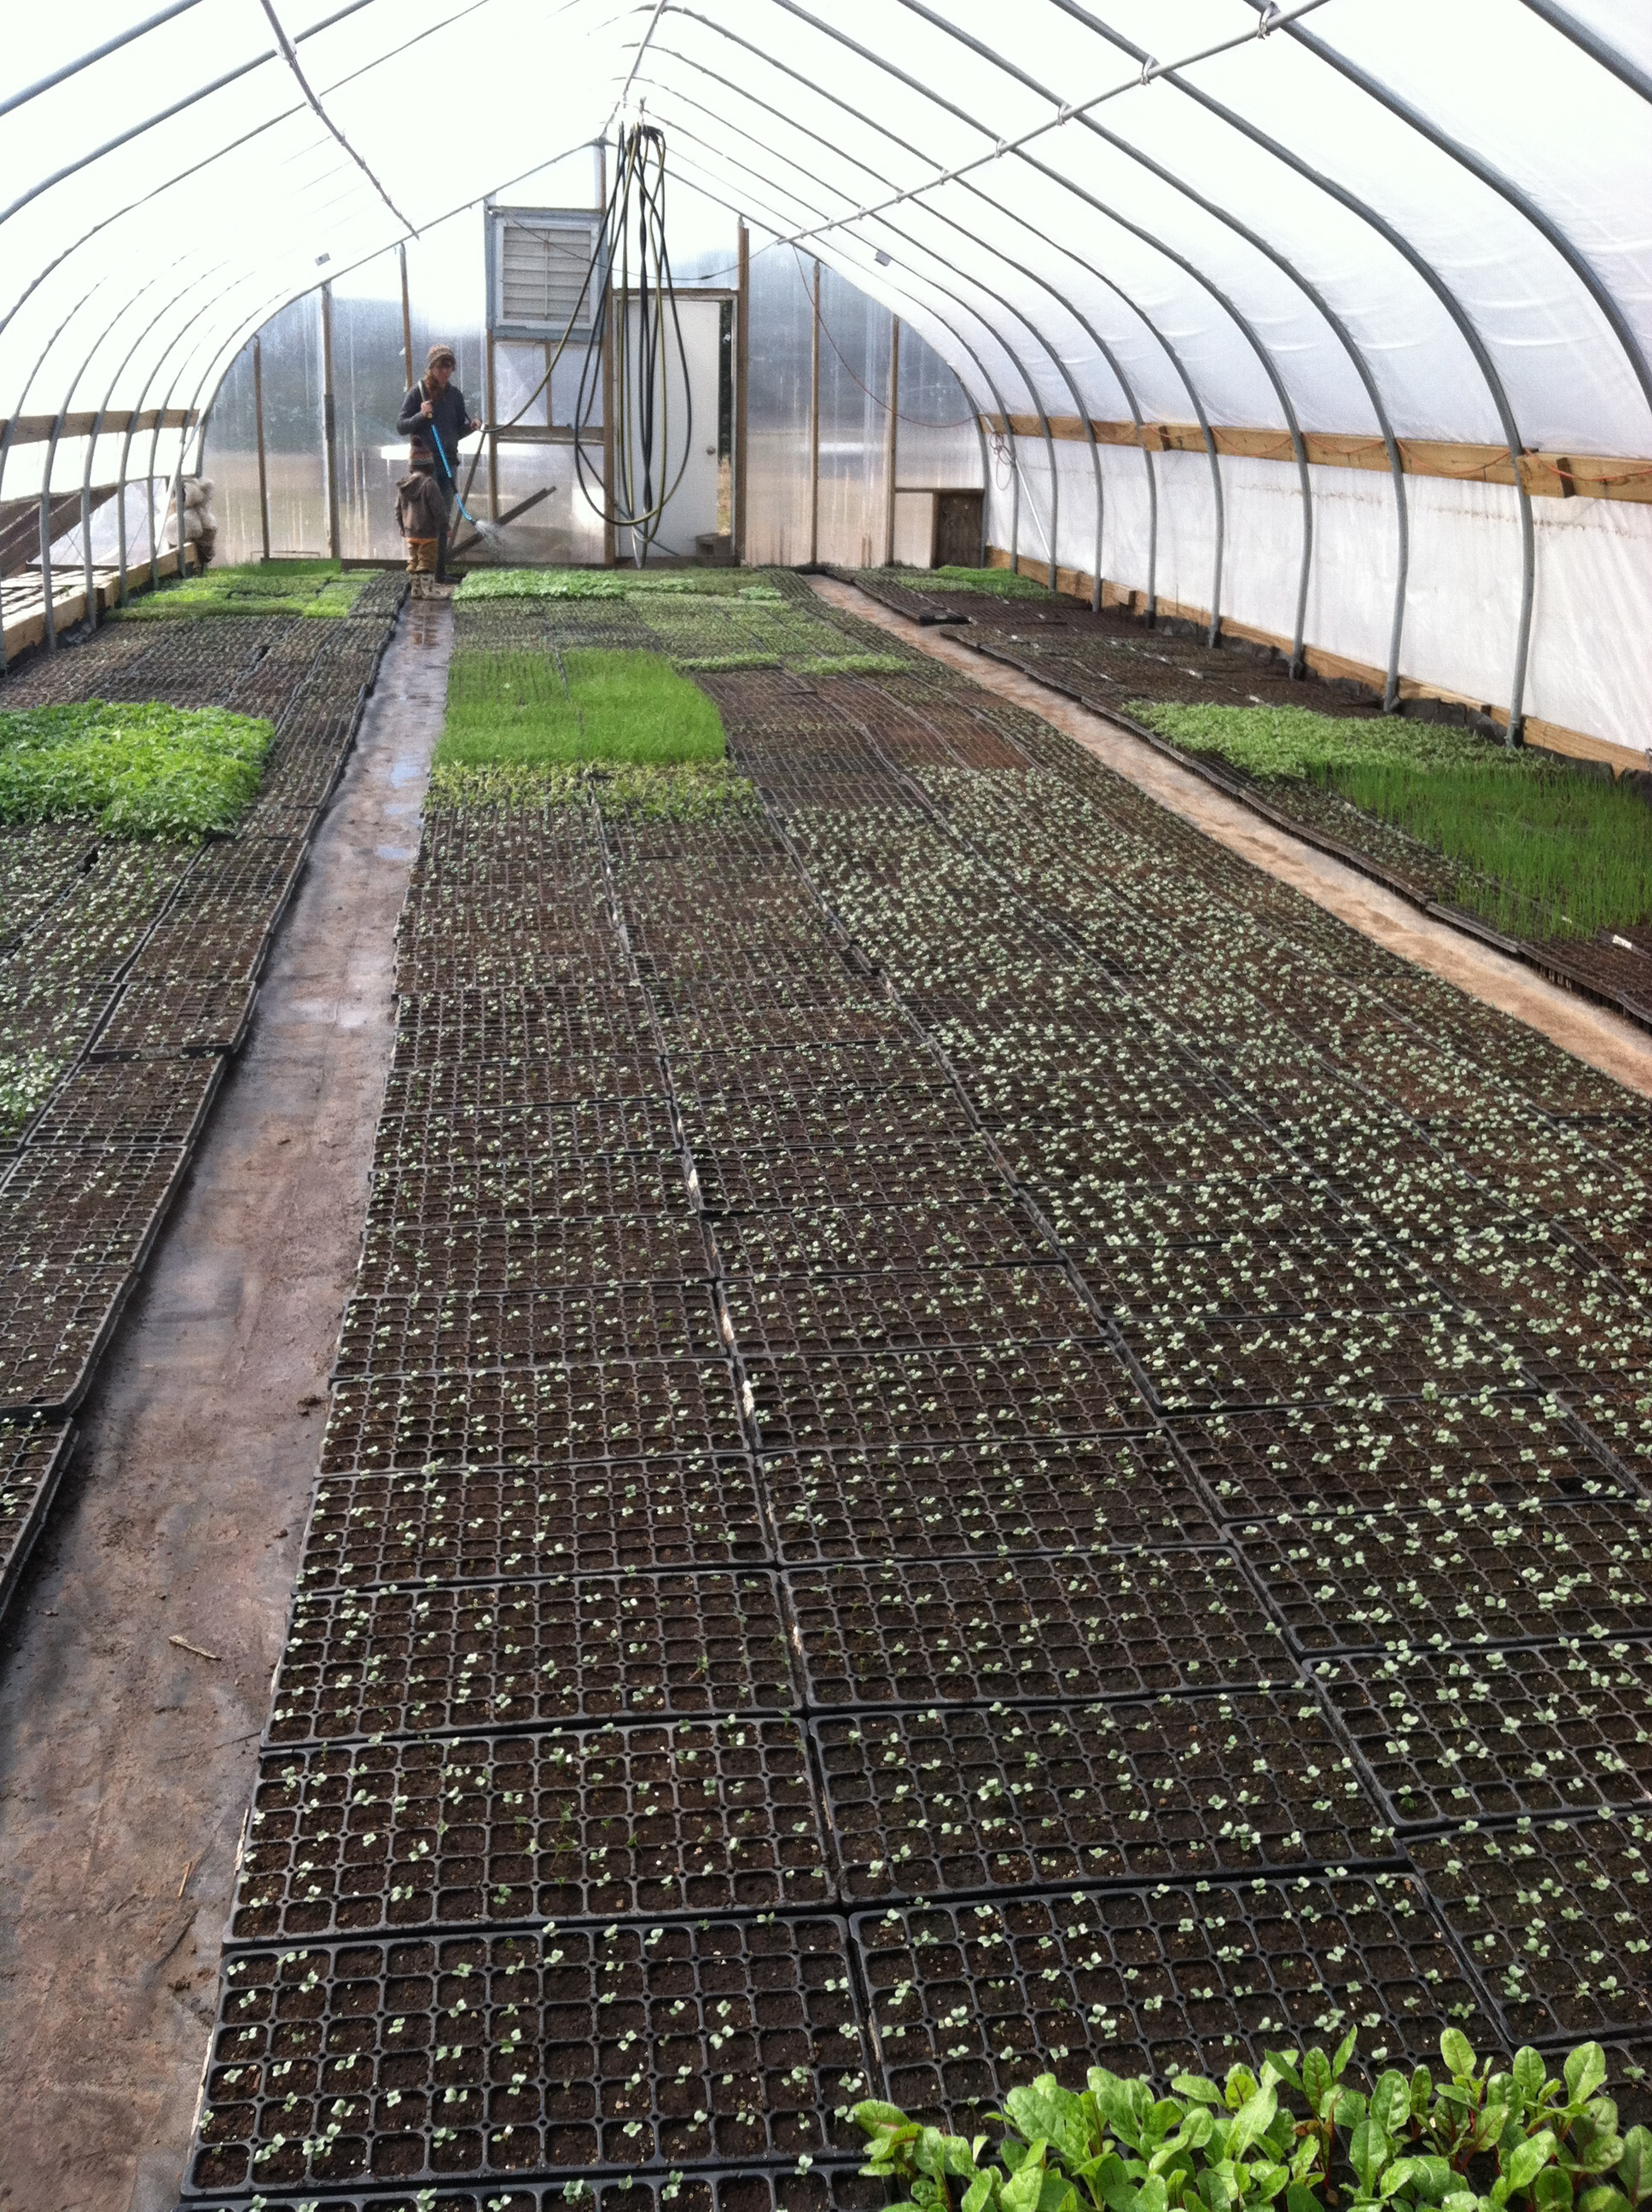 the greenhouse greening up